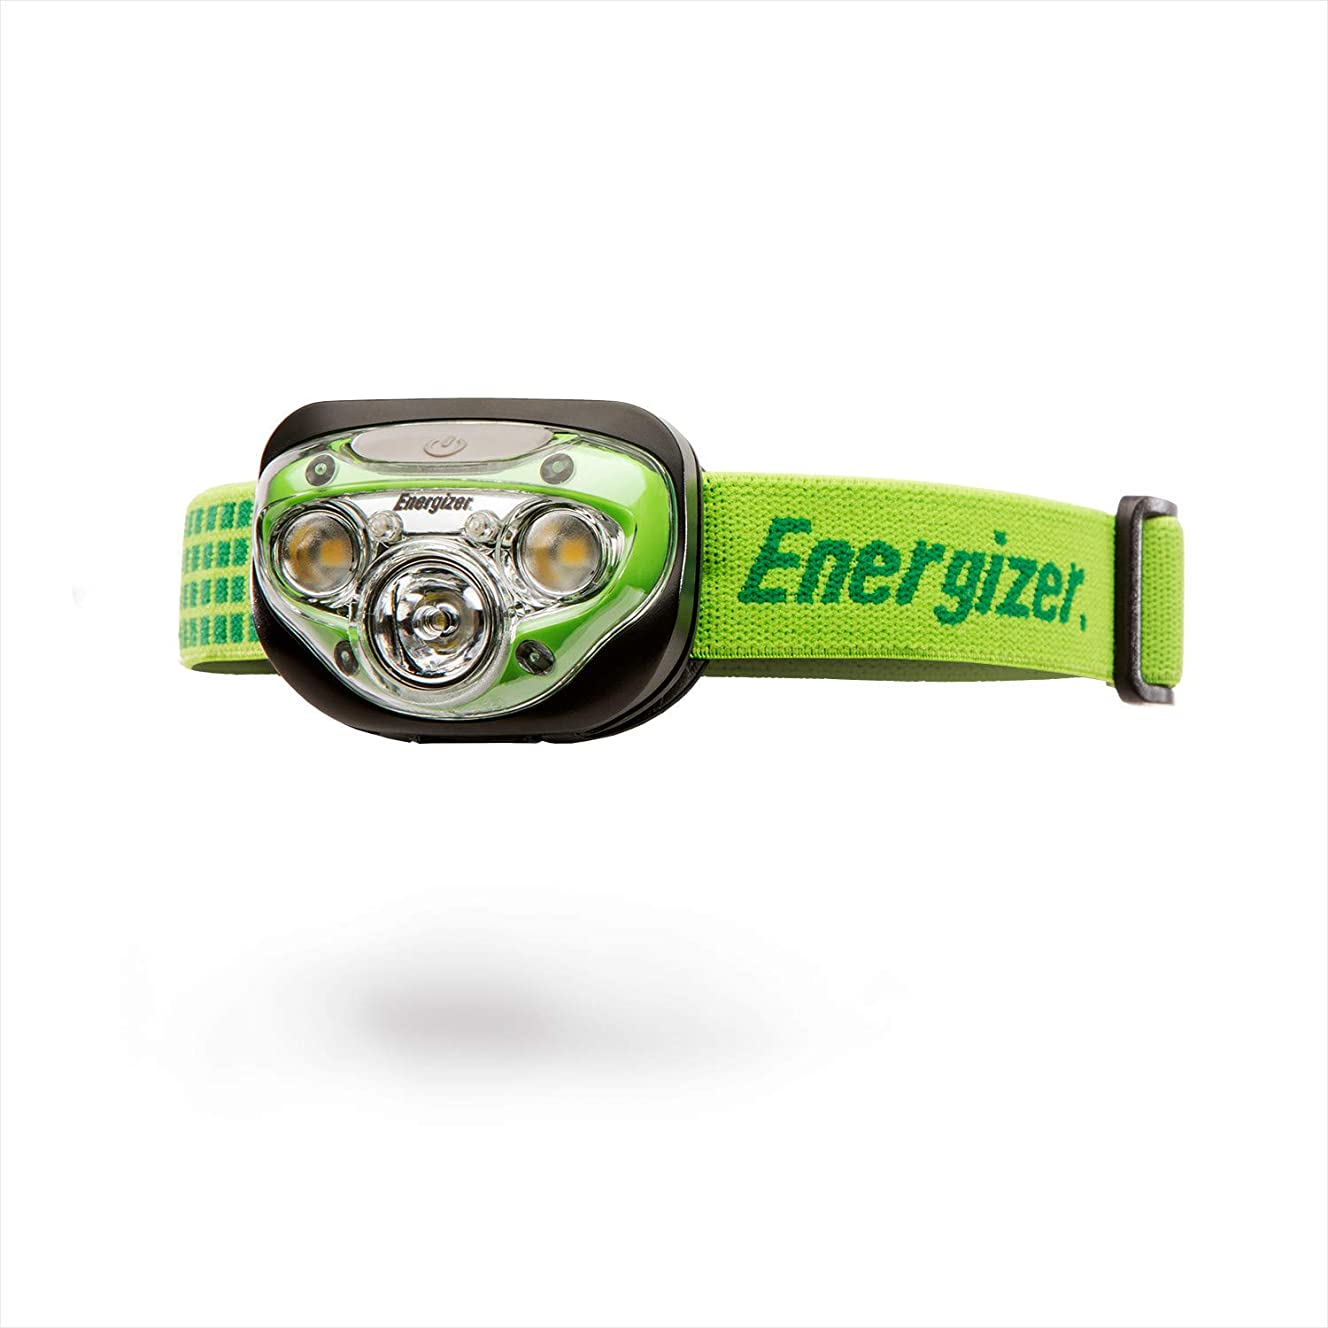 Energizer Vision LED Headlamp Flashlight, Ultra Bright High Lumens, For Camping, Running, Hiking, Outdoors